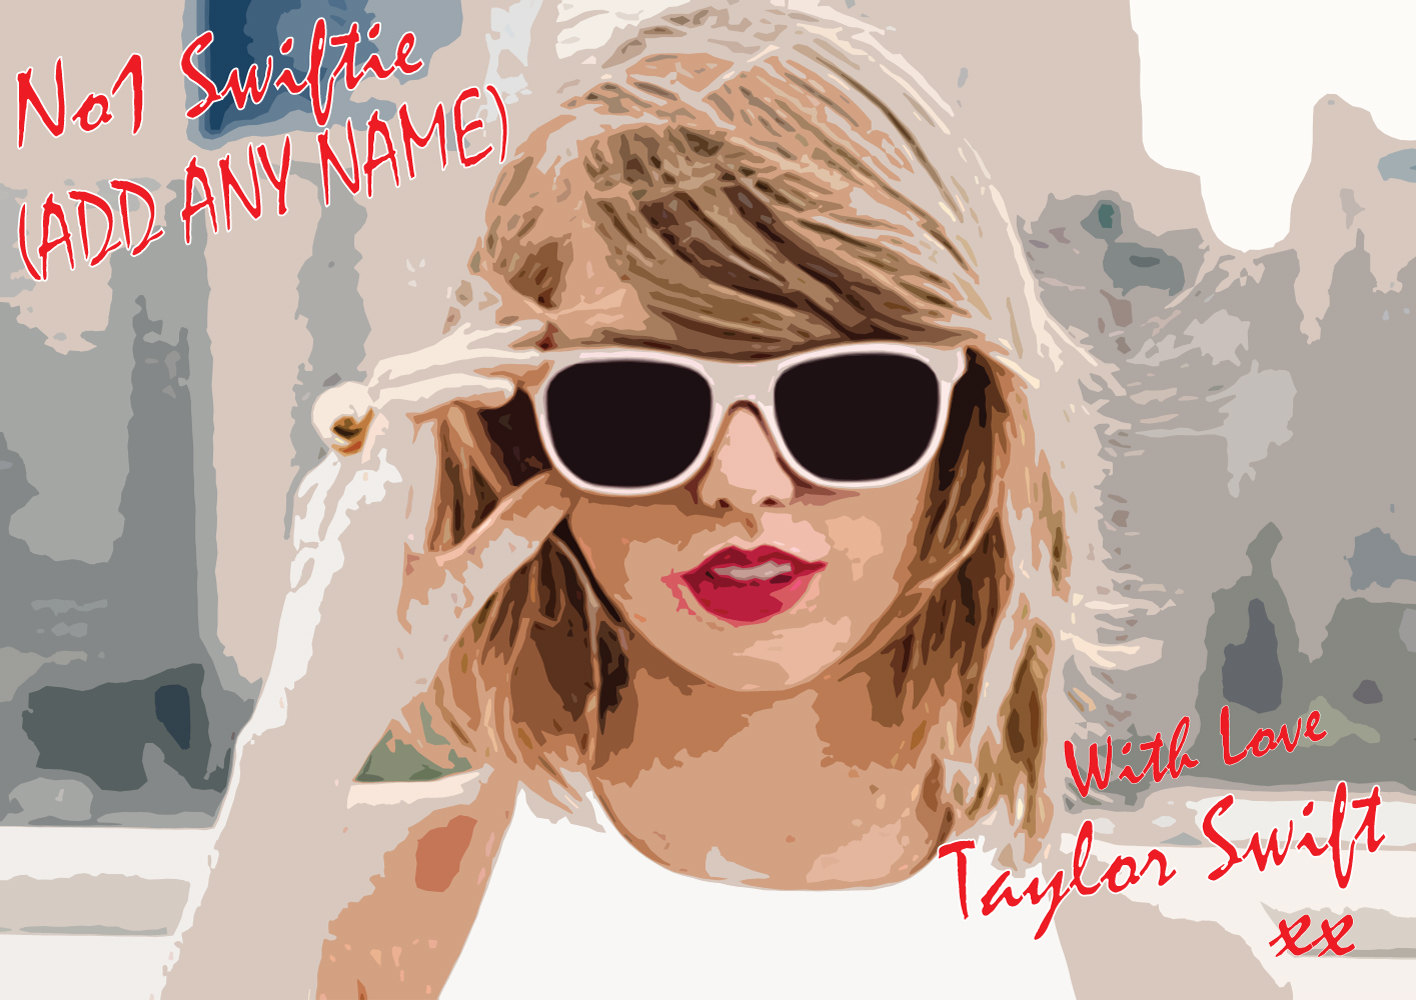 Taylor swift phone clipart.